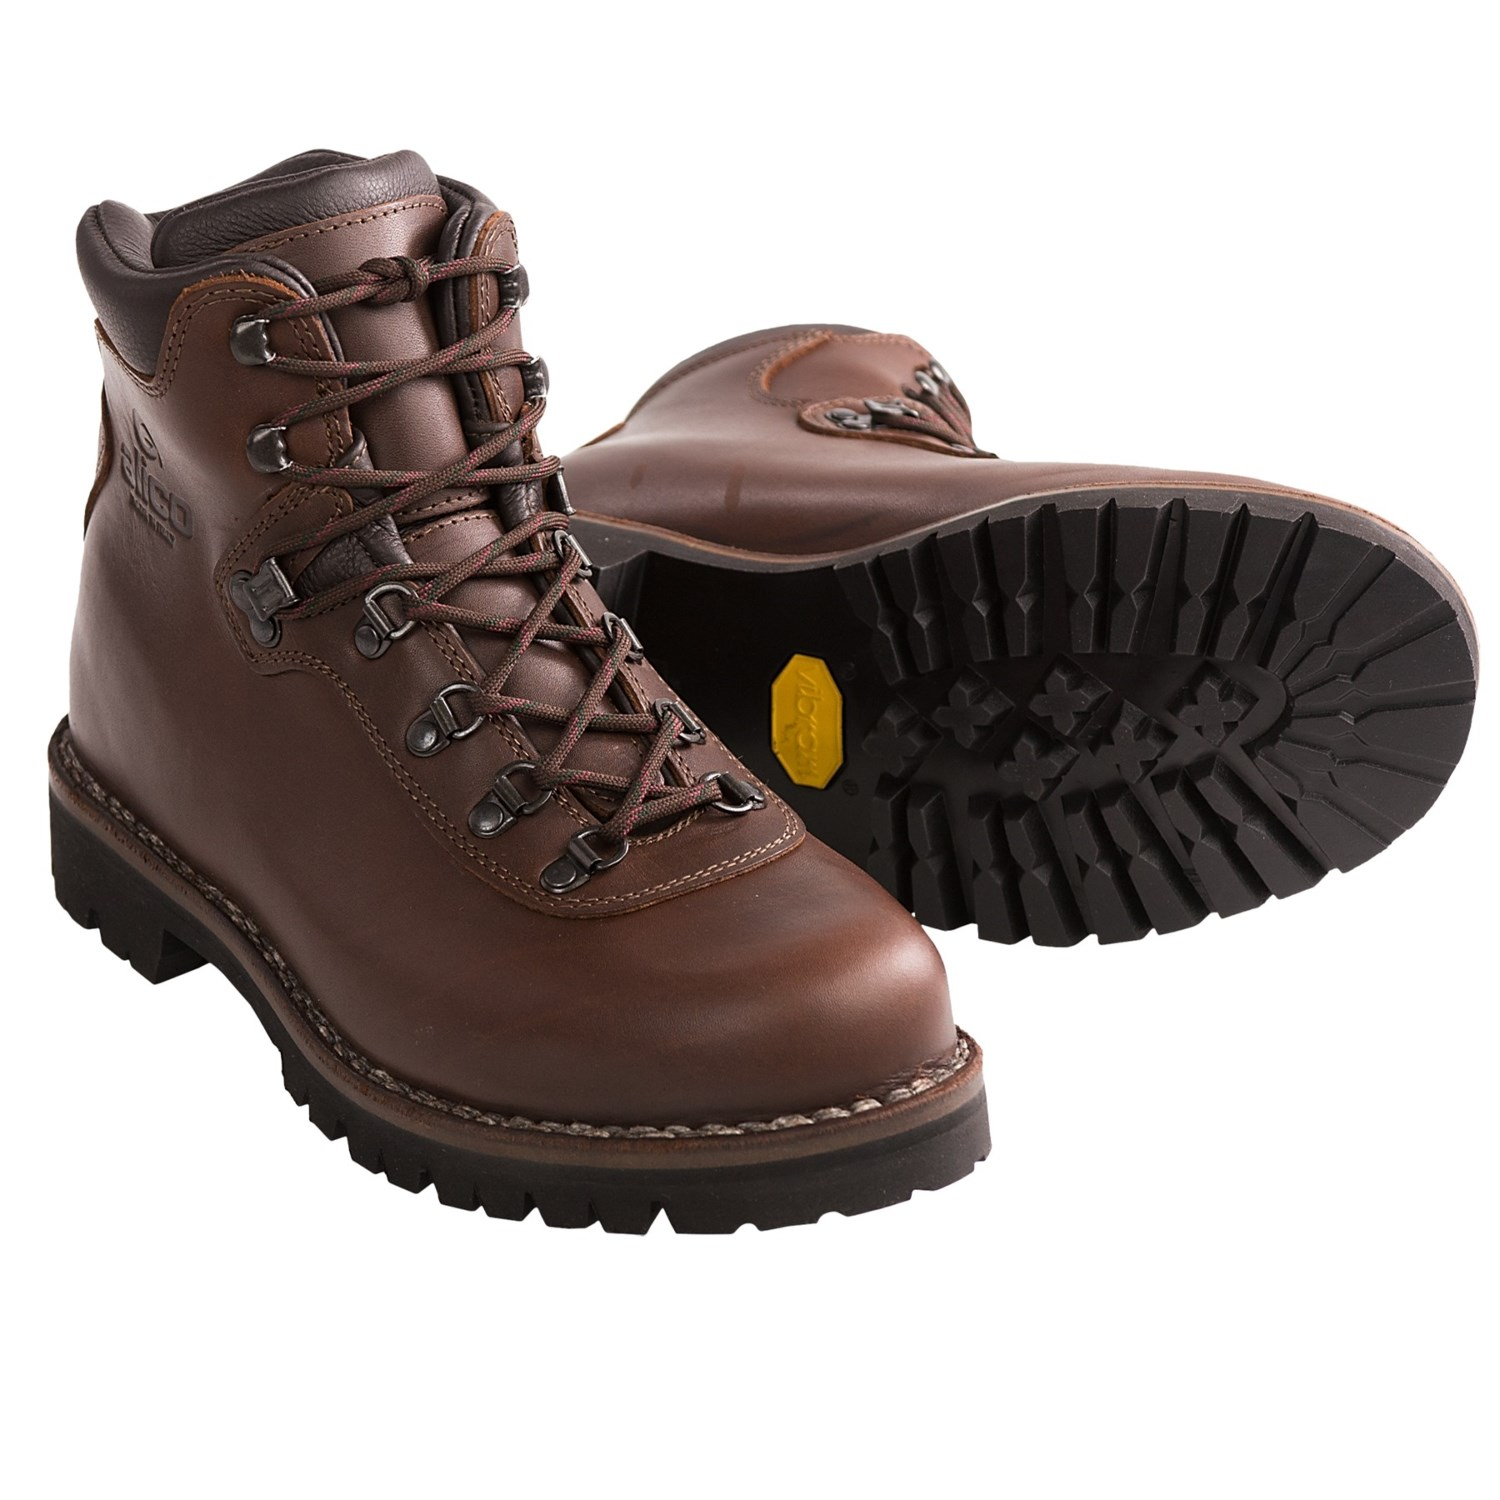 Mens Outdoor Boots iI51plPy